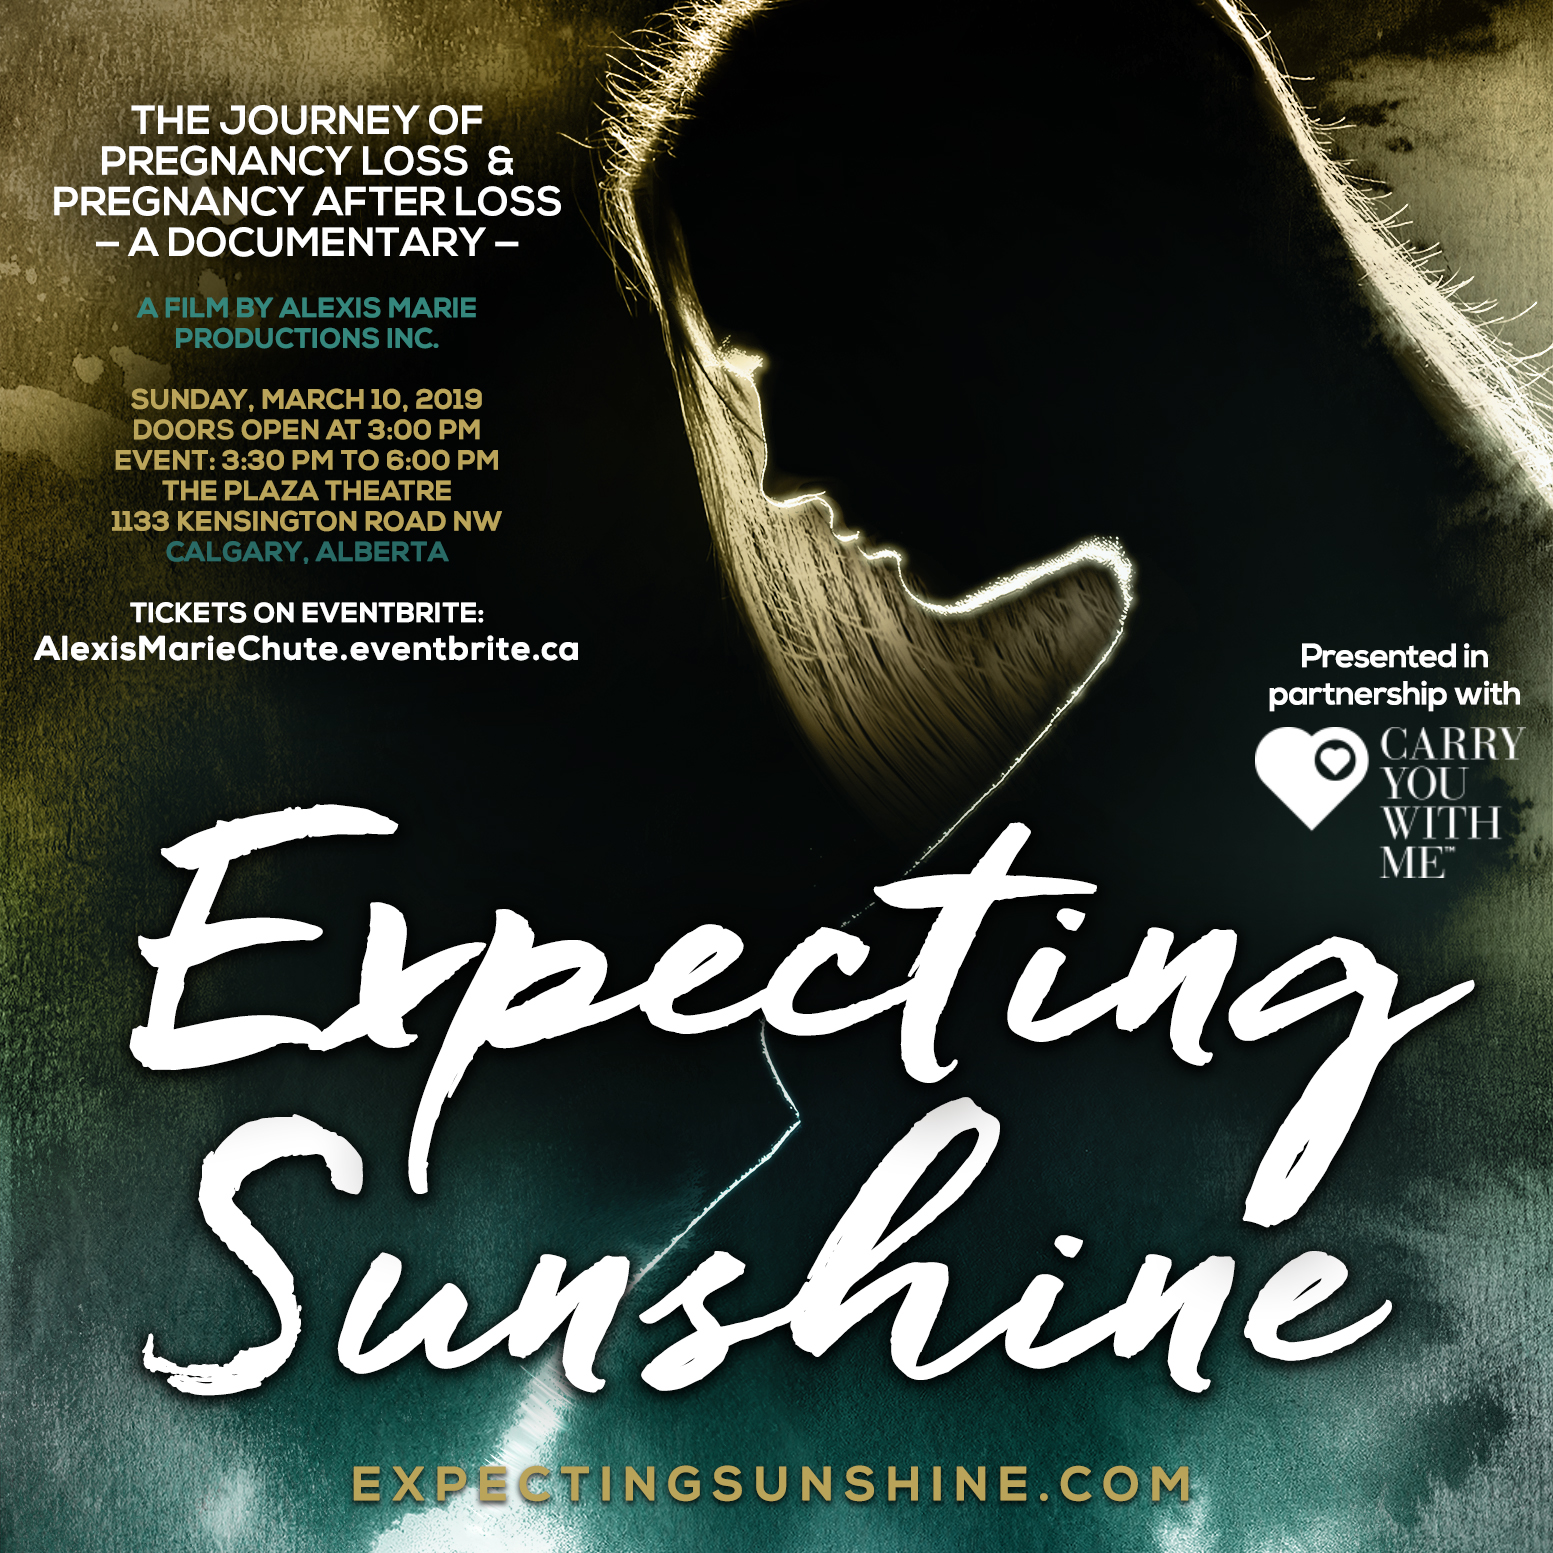 Expecting Sunshine Movie Poster 11x17 - SCREENING INFO CALGARY -sq.jpg